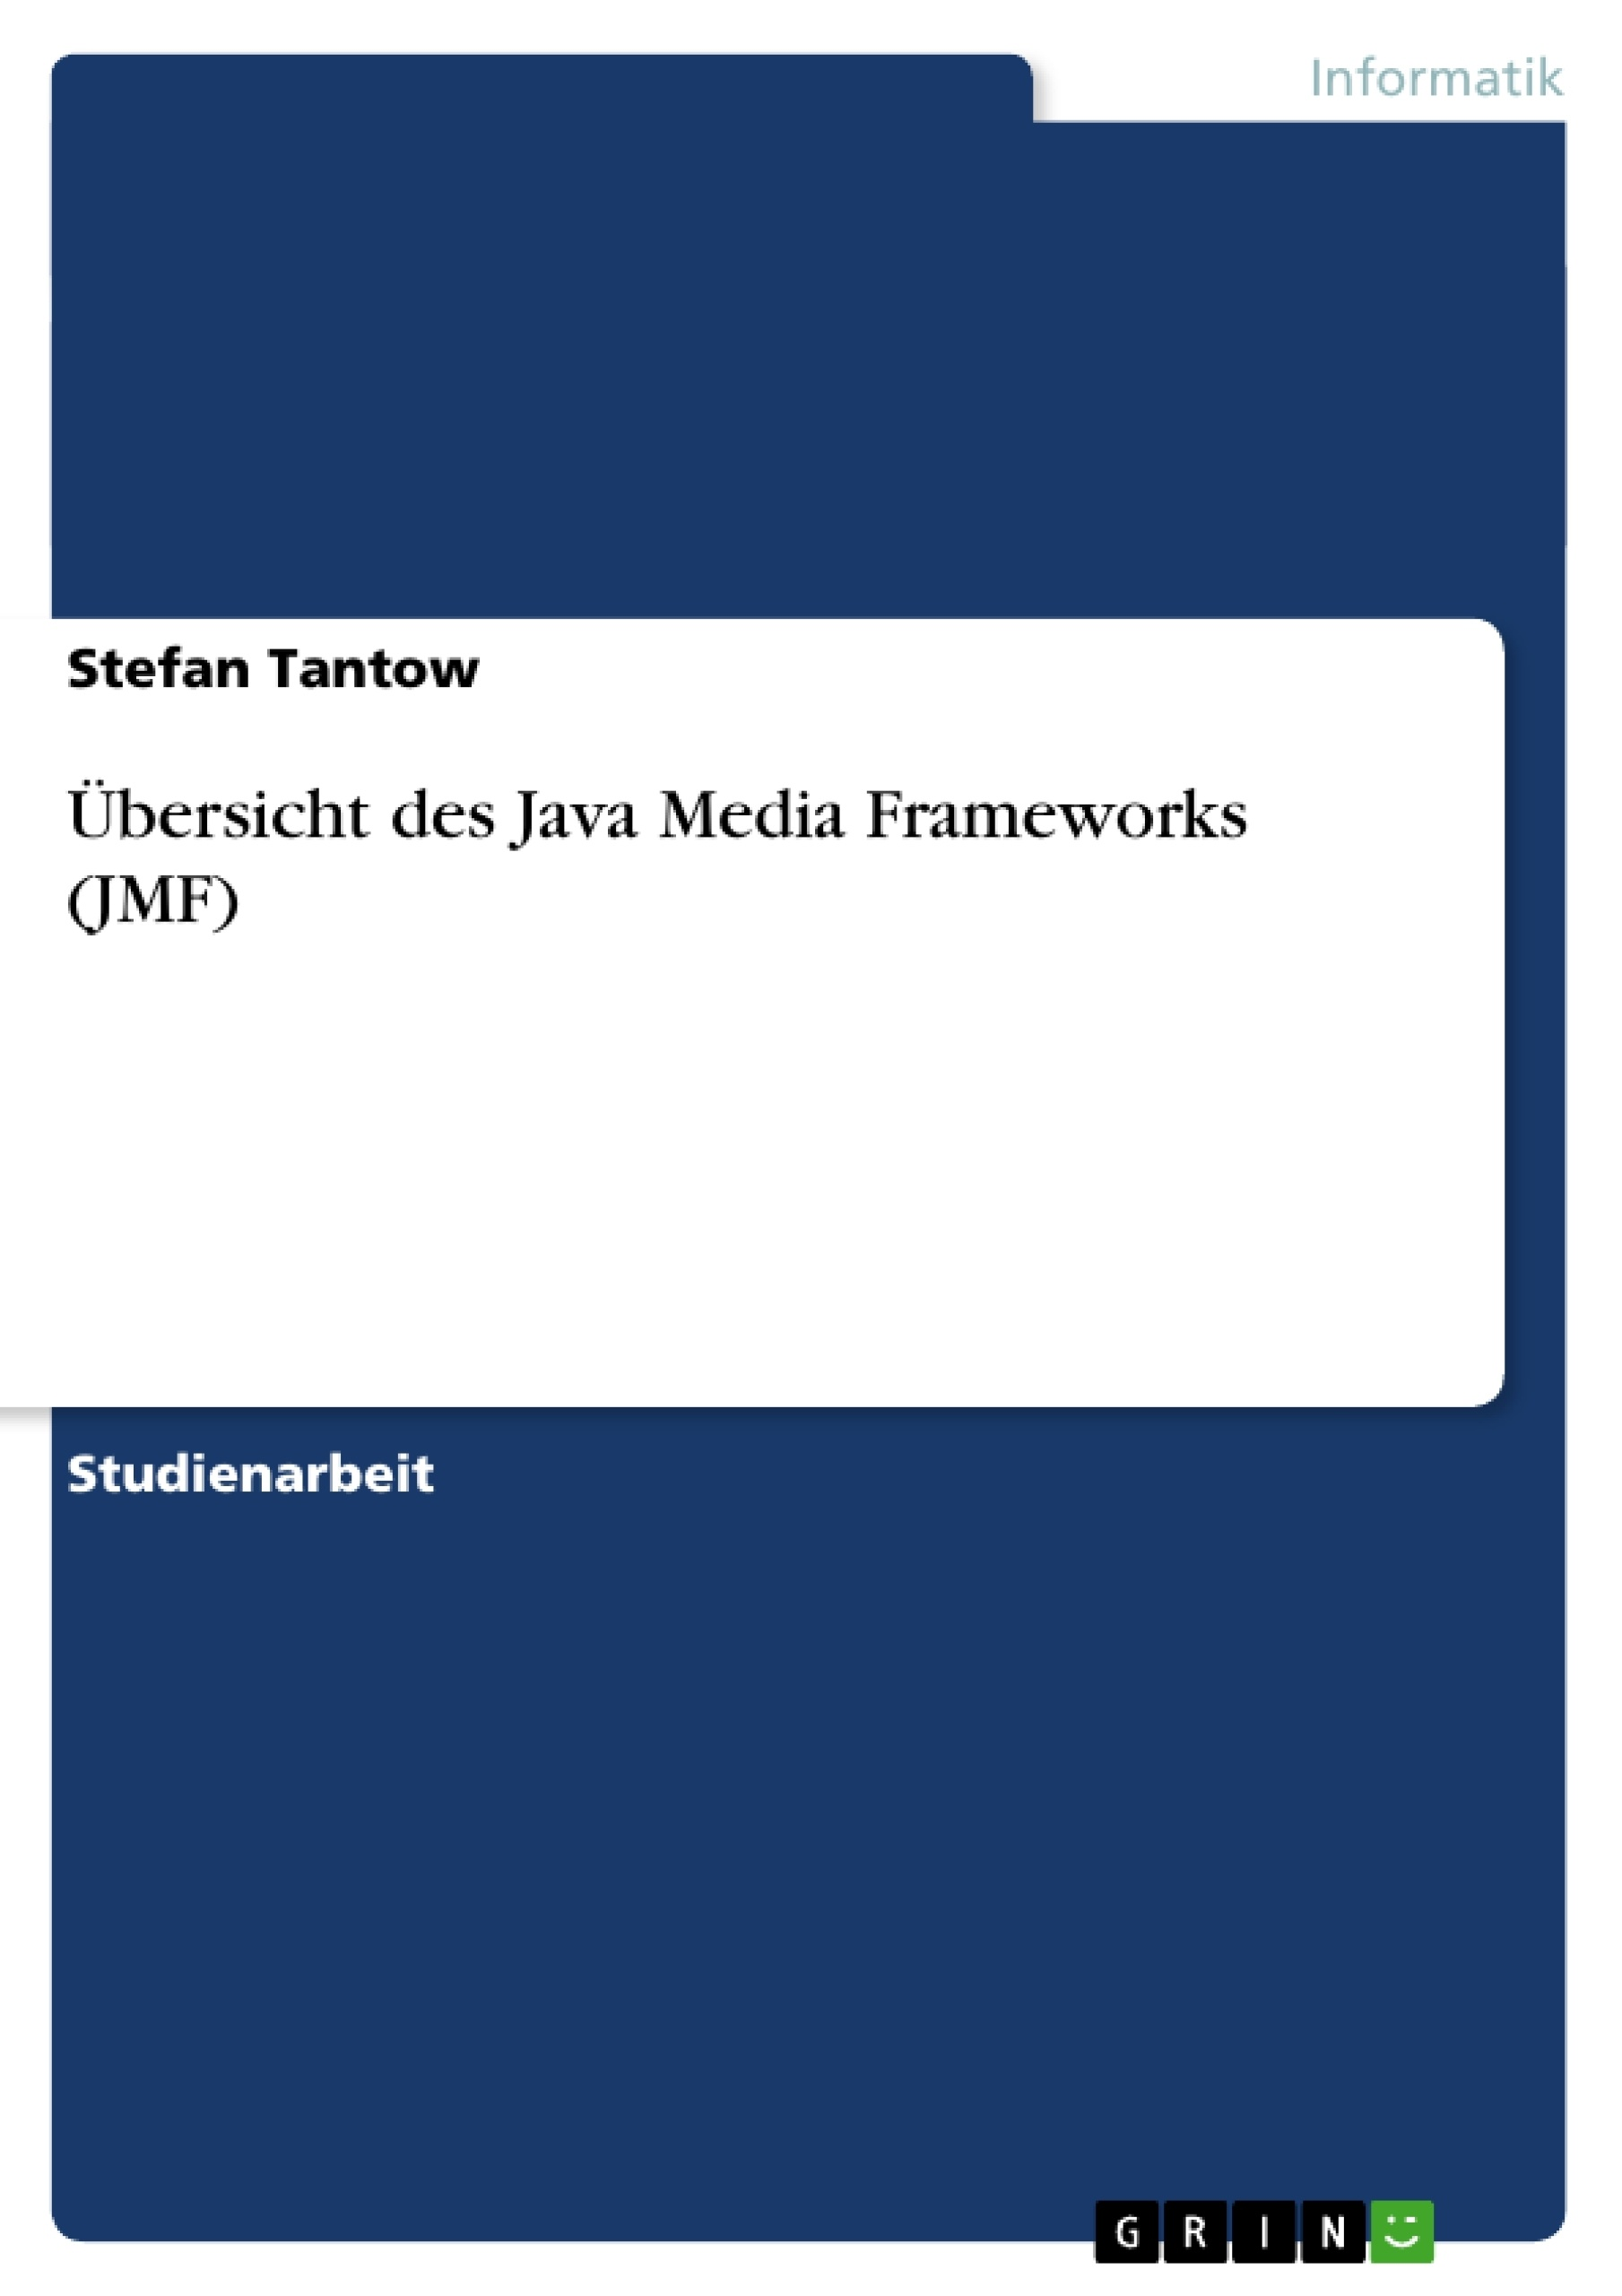 bachelor thesis webentwicklung